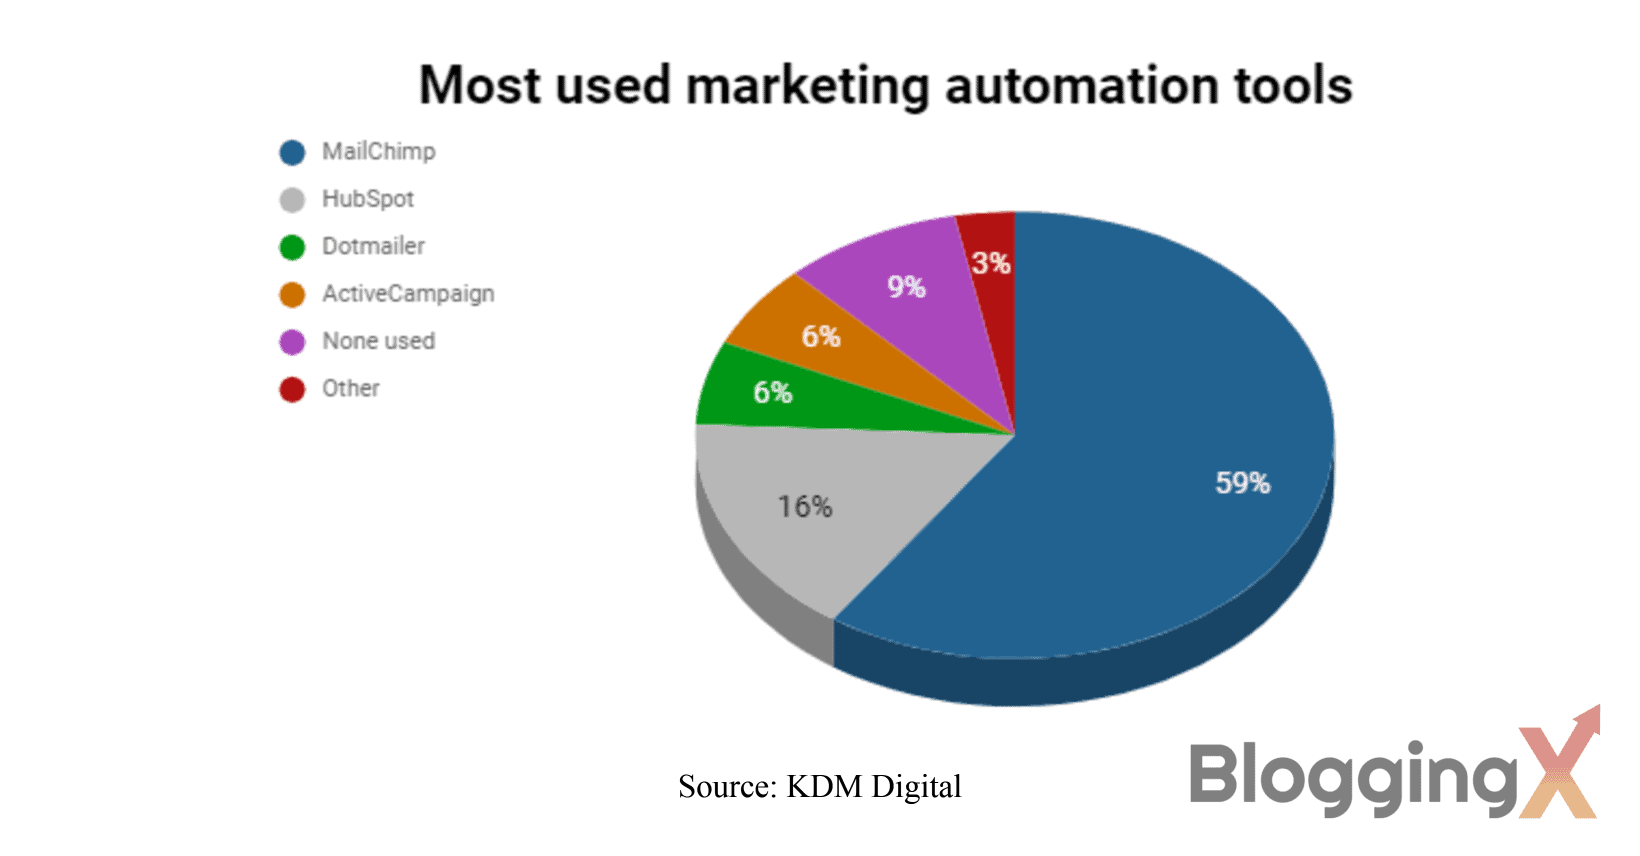 Most used marketing automation tools